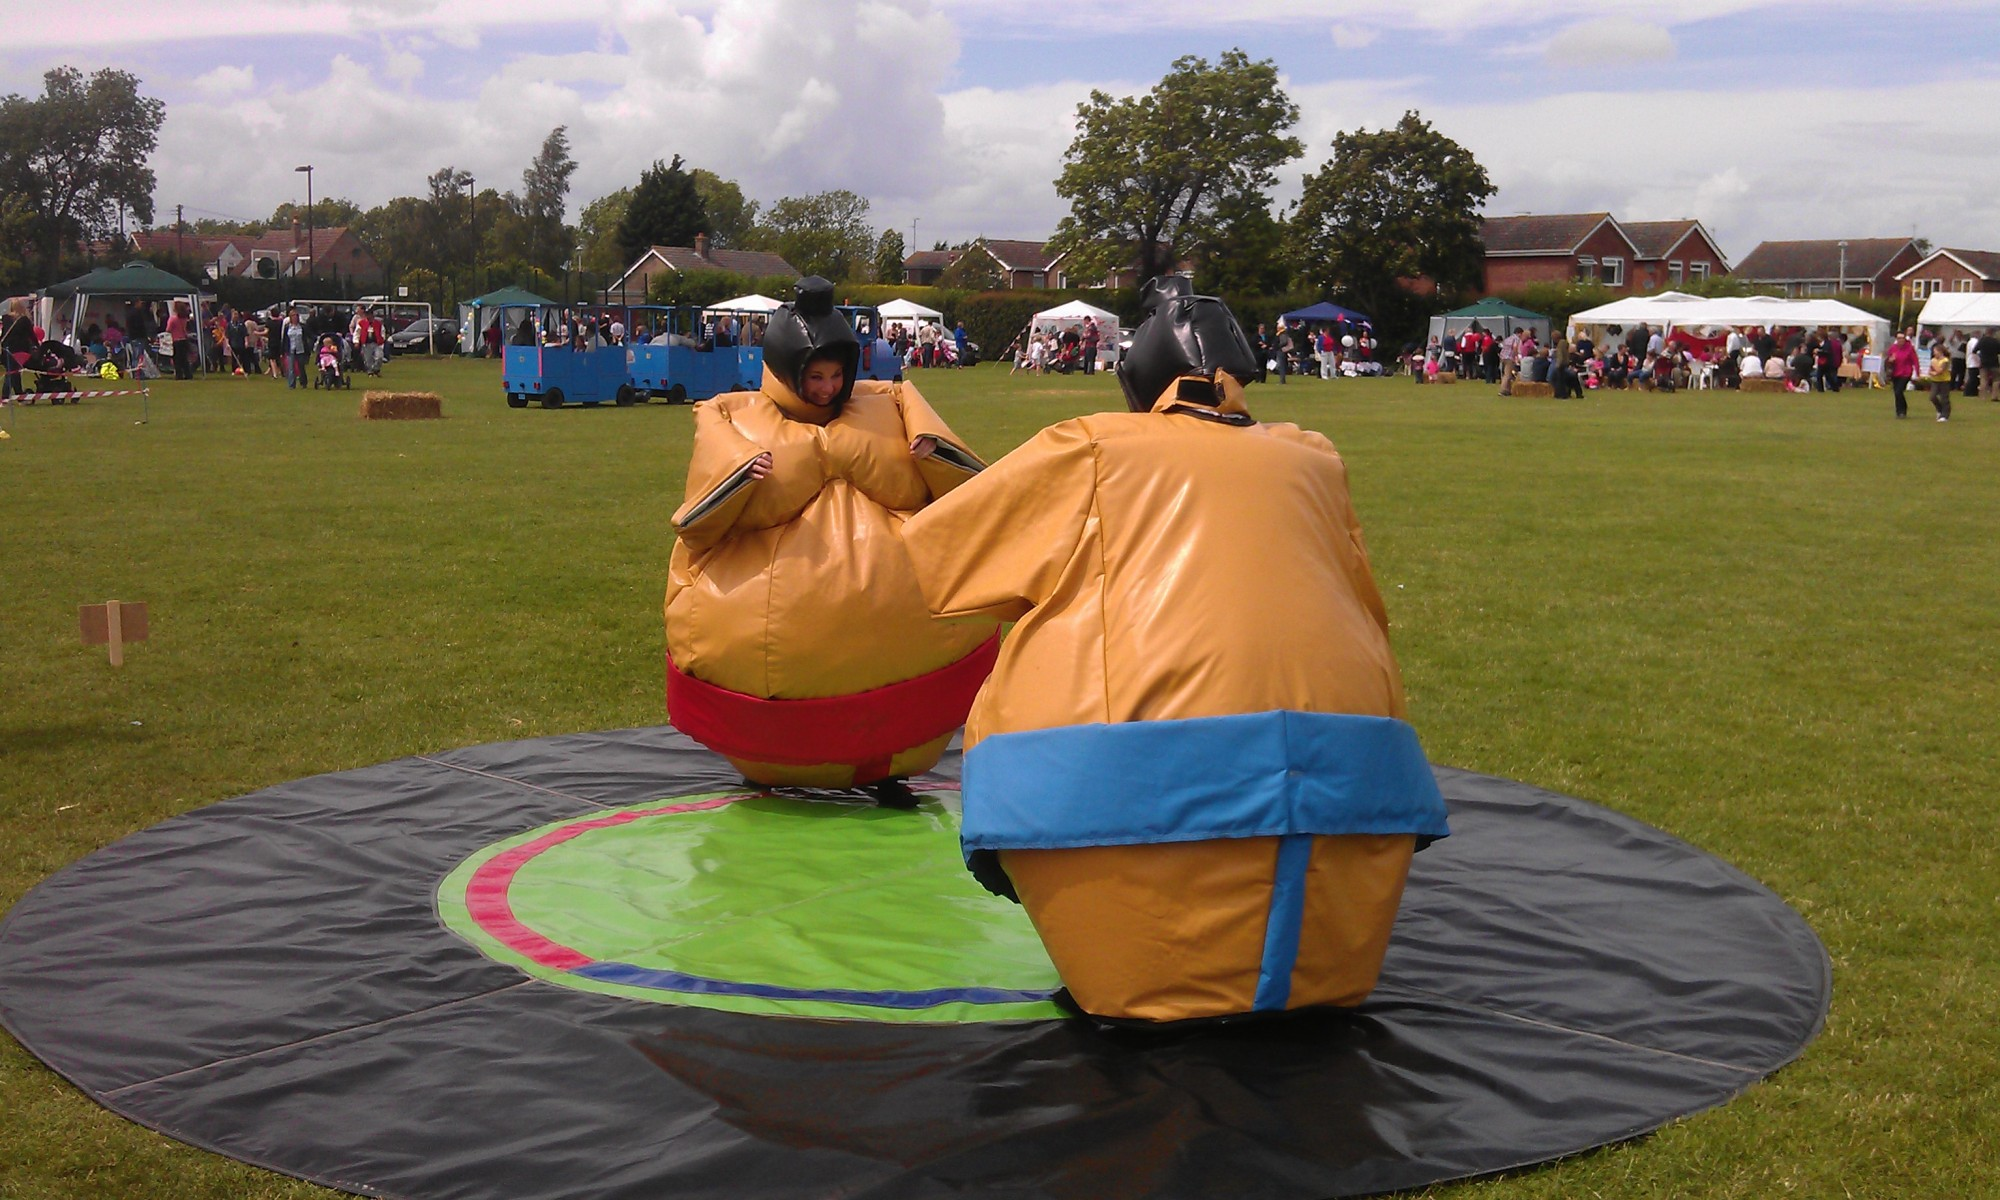 Two people in Sumo Wrestler costumes